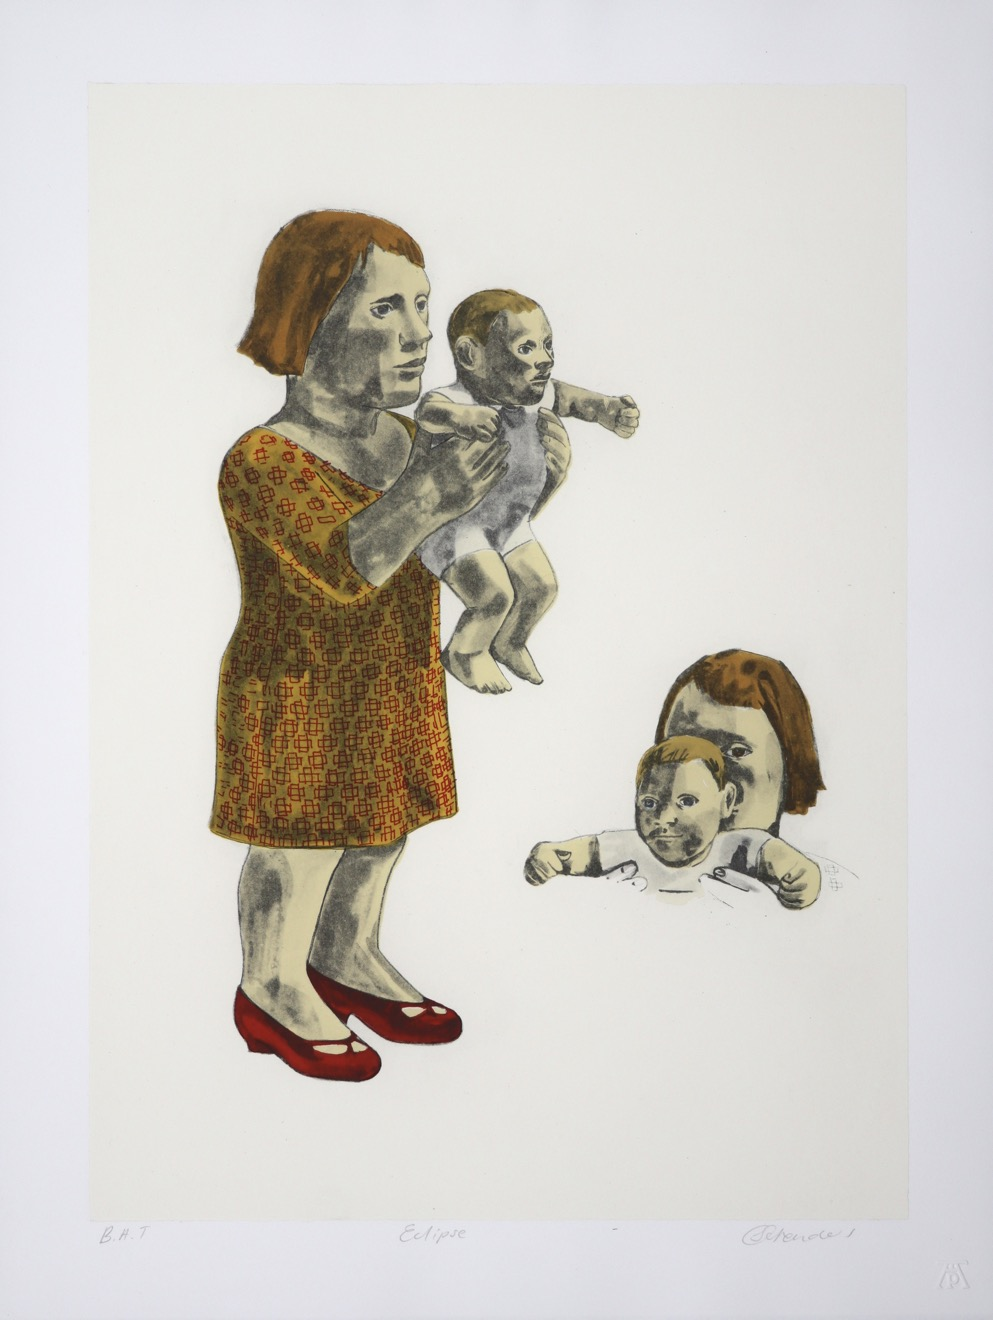 female figure holding child up in front of her with detail of their heads next to her